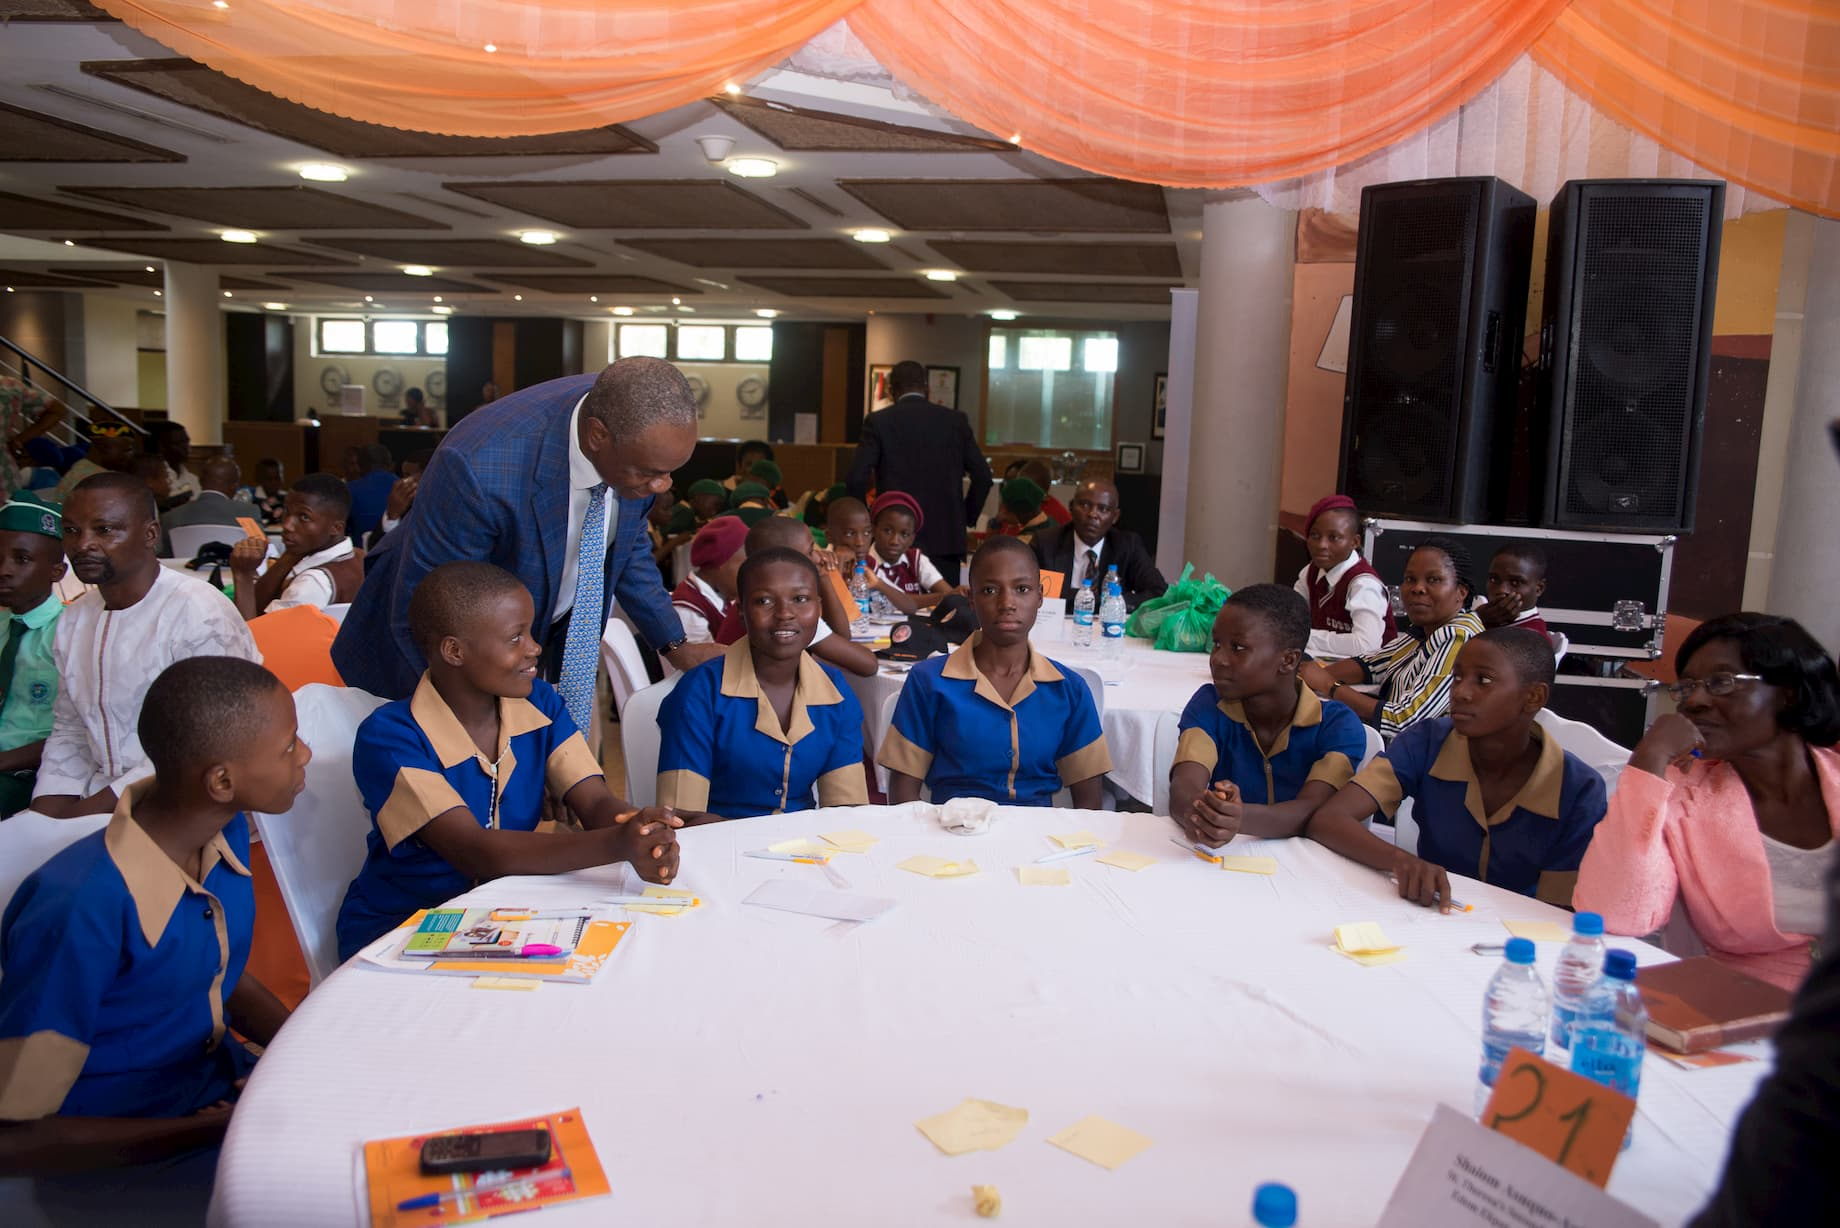 Mr. Inoyo interacting with the students of St. Theresa's Sec. Sch, Edem Ekpat. Shalom Ankoh's adopted school